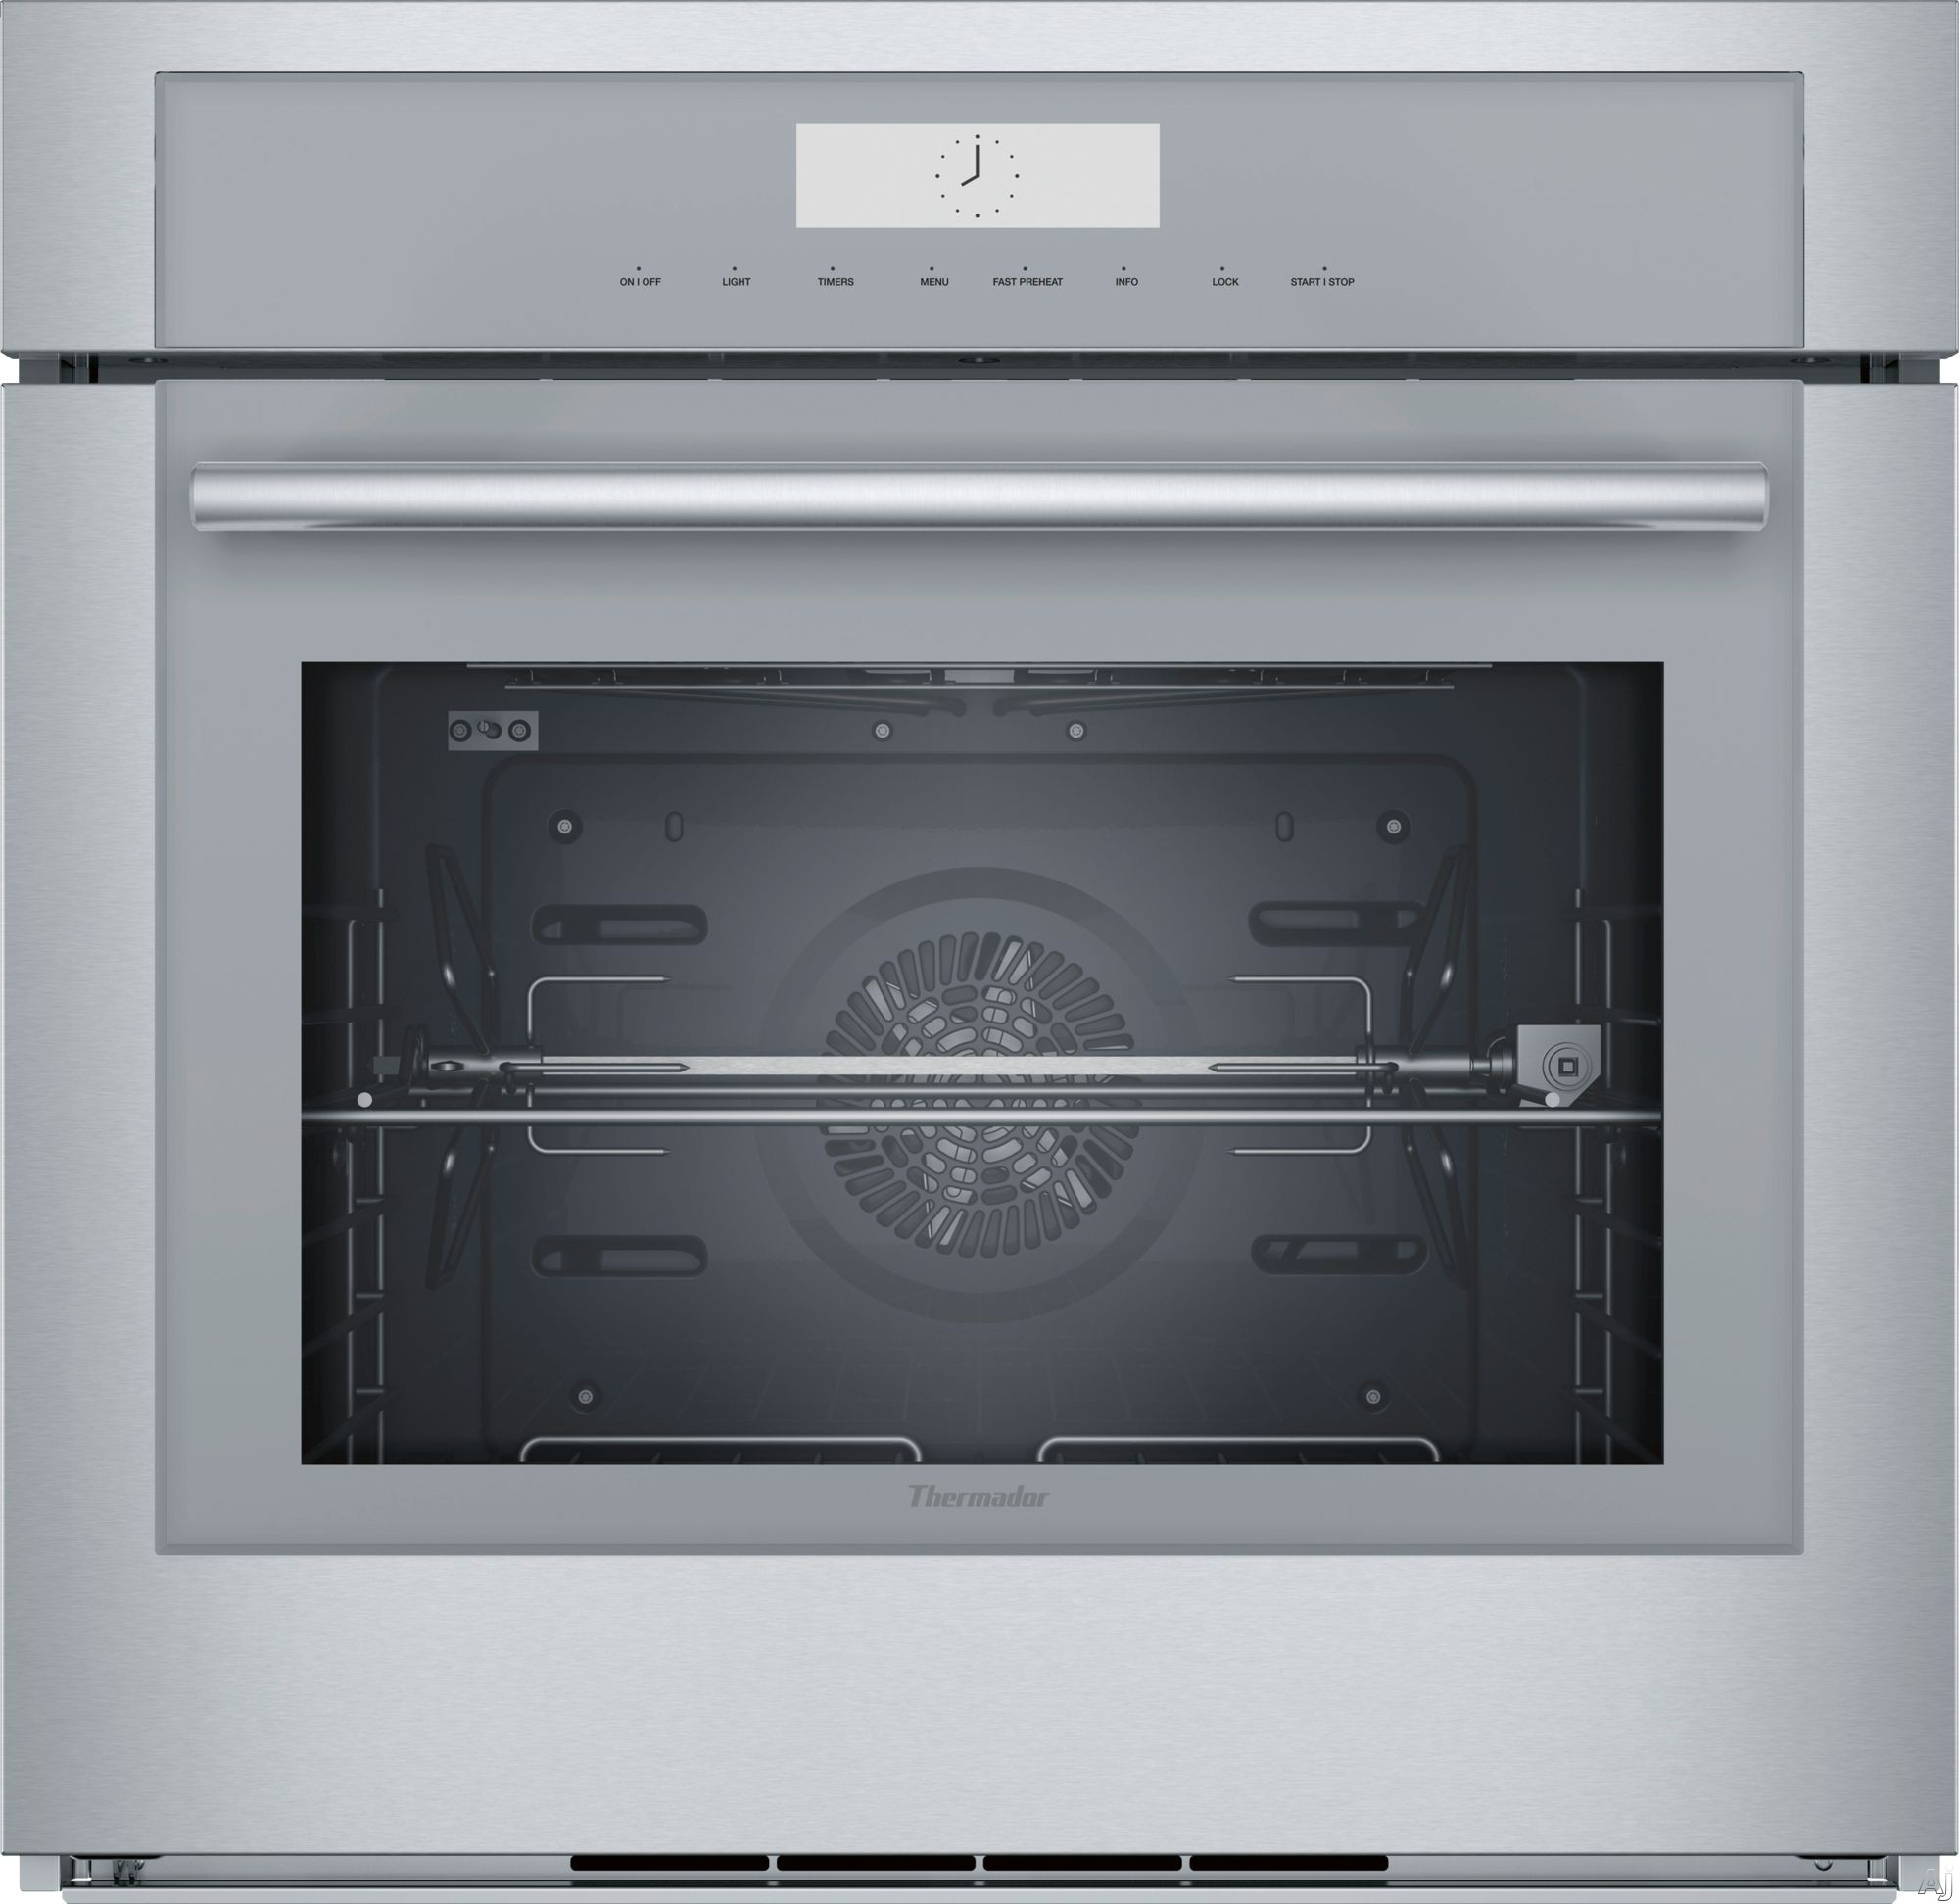 Thermador Masterpiece Series MED301WS 30 Inch Single Wall Oven with Self-Clean, Hydraulic SoftClose® Hinges, 16 Cooking Modes, Meat Probe, Rotisserie, Halogen Lights, Telescopic Racks, Wi-Fi and Sa